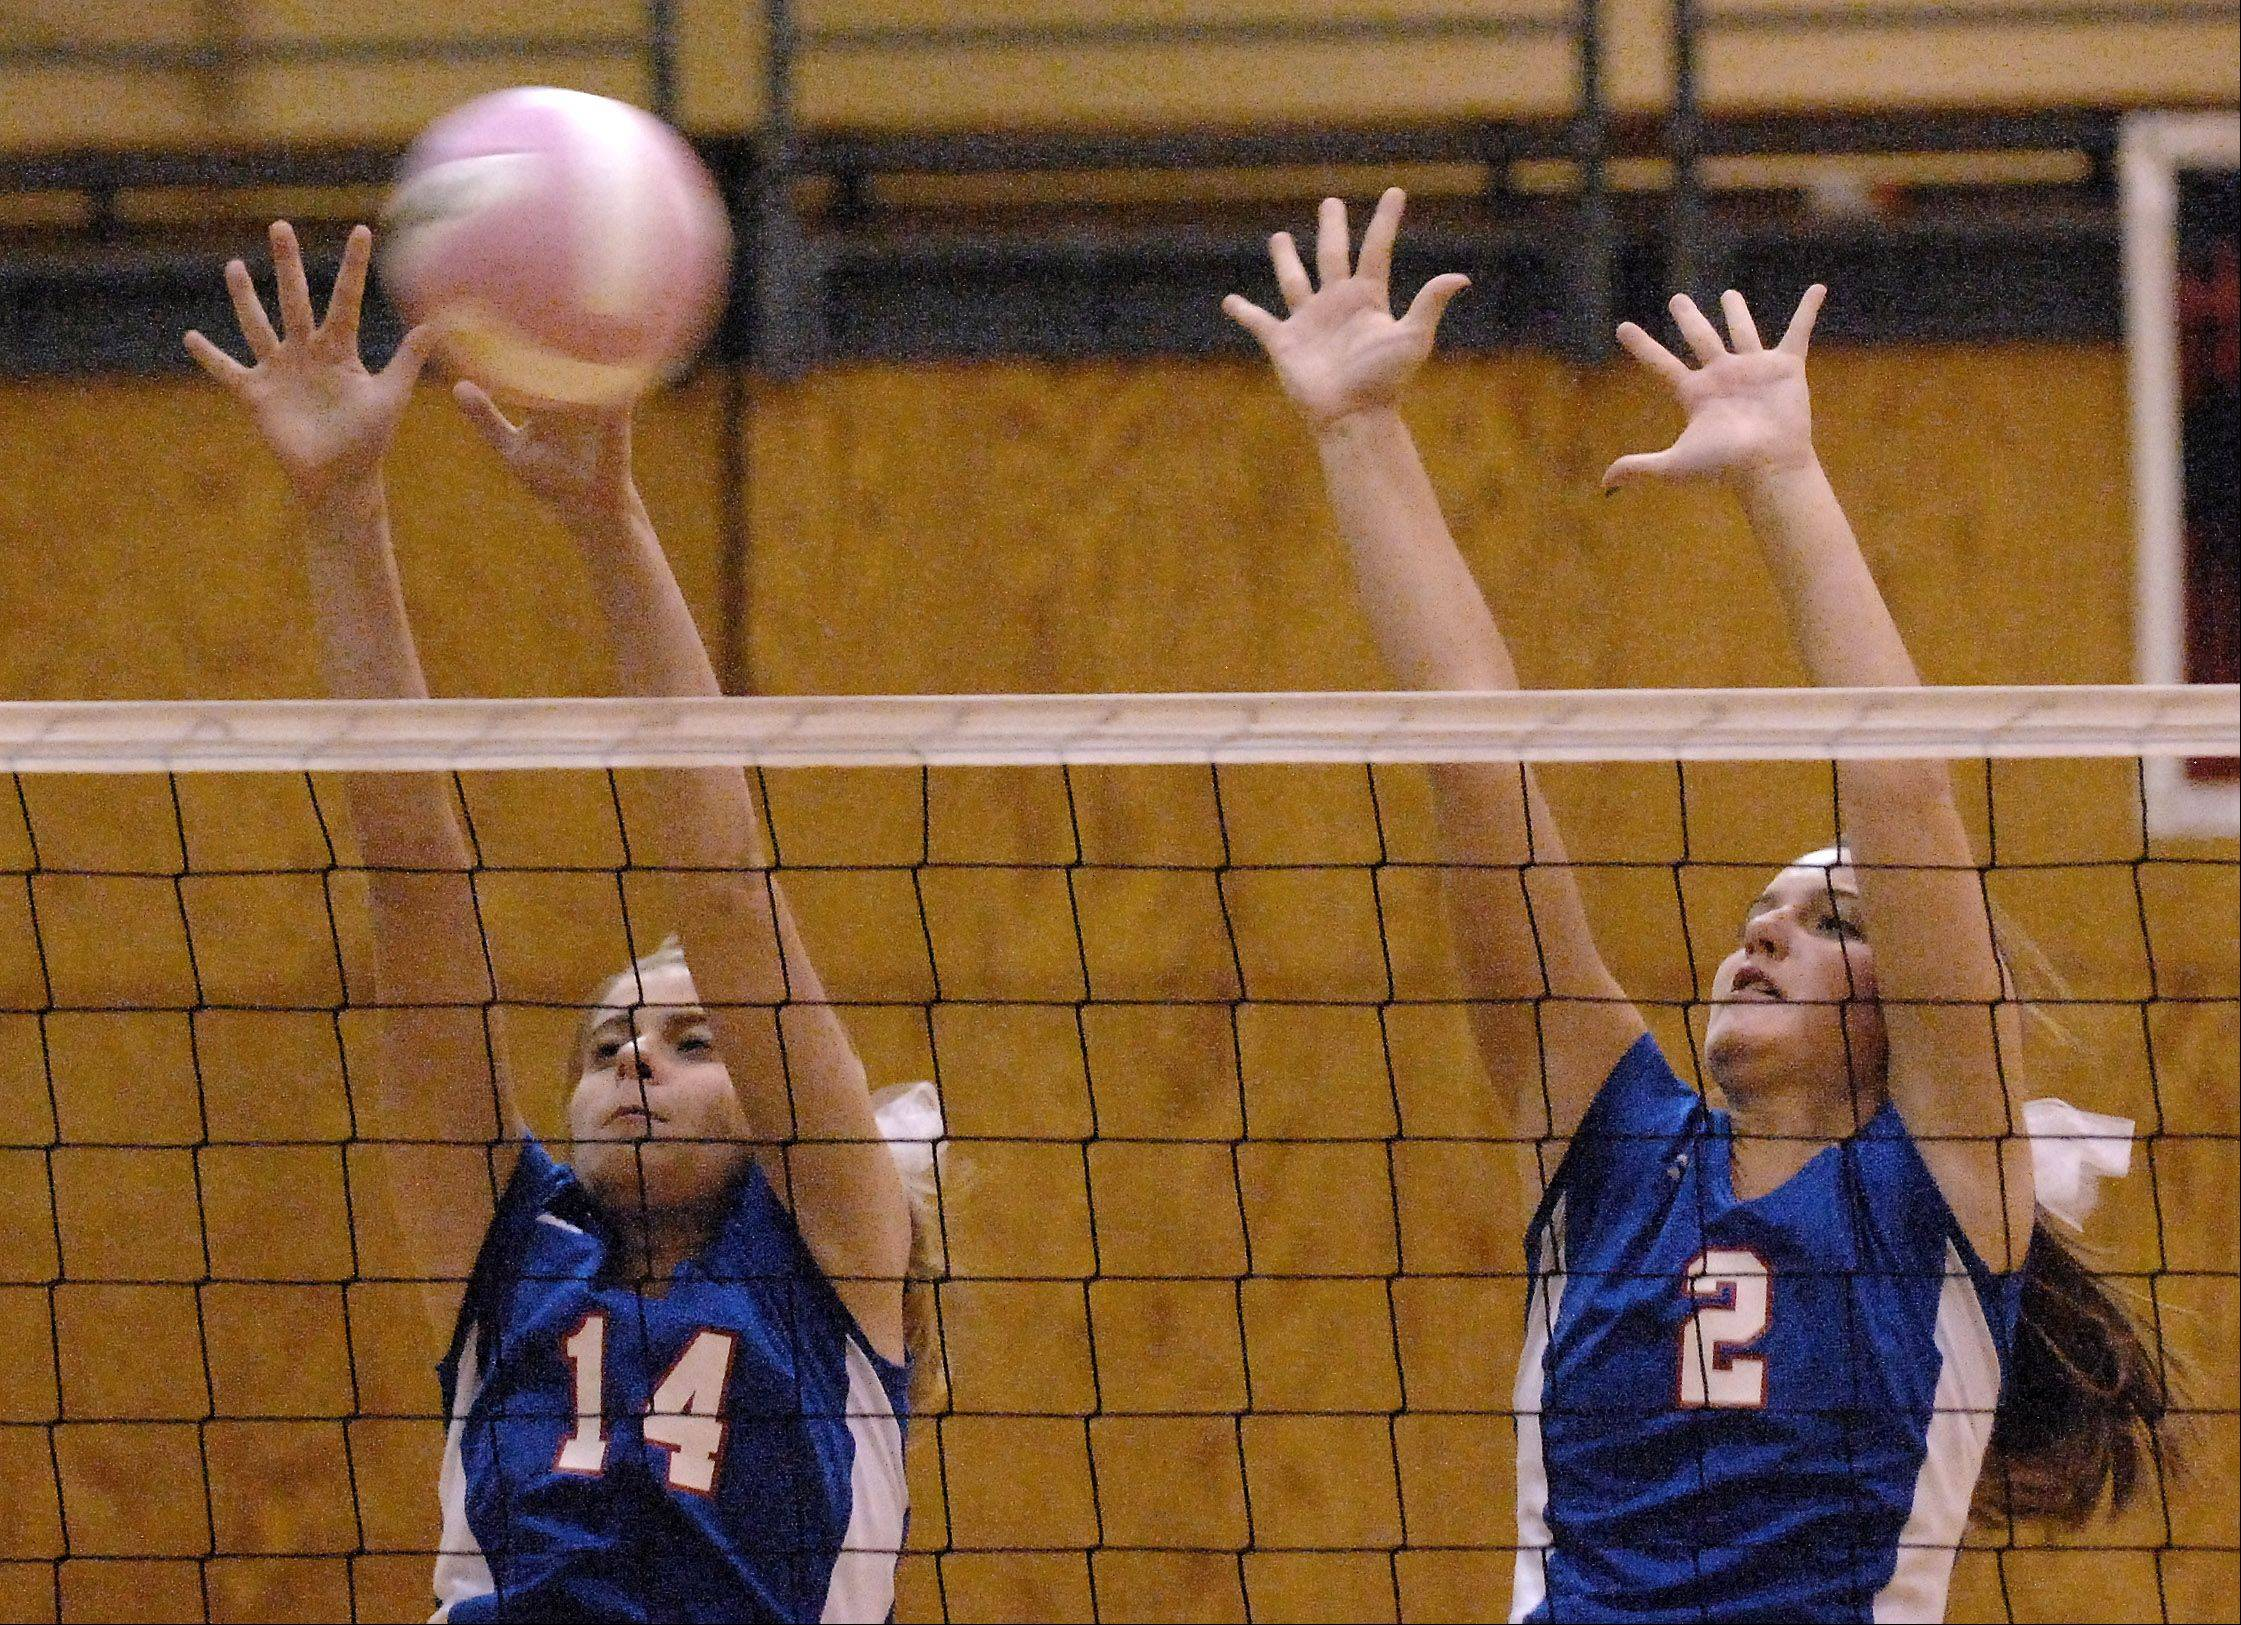 Glenbard South's Tomei Ball, left, and Laura Quinlivan go up for a block against Batavia during Thursday's game at Batavia.